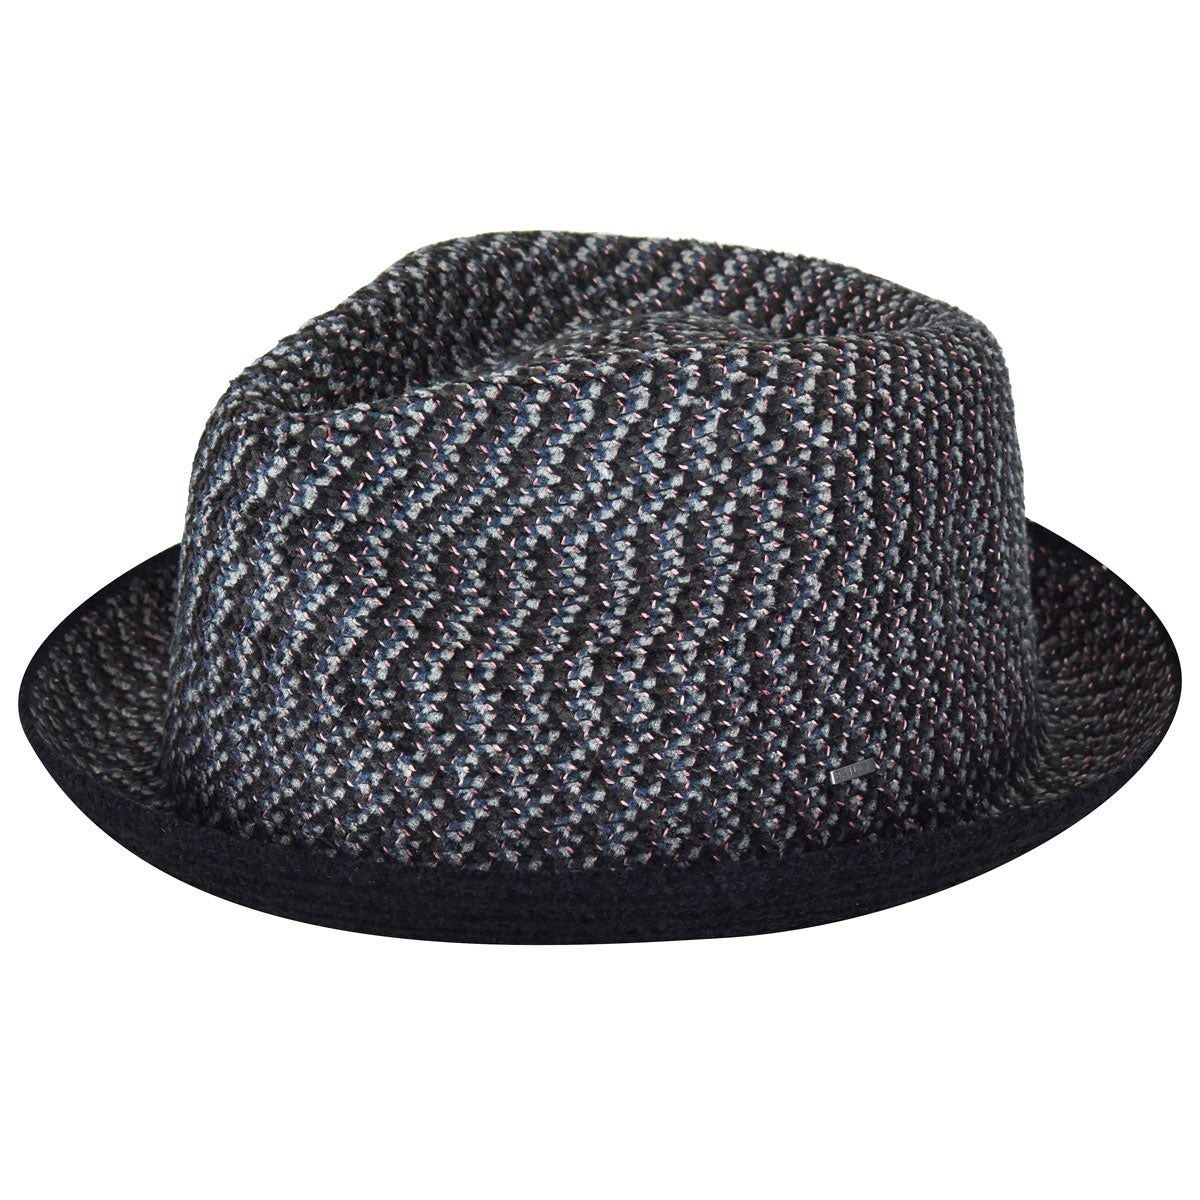 Bailey of Hollywood Cain Trilby in Black Melange